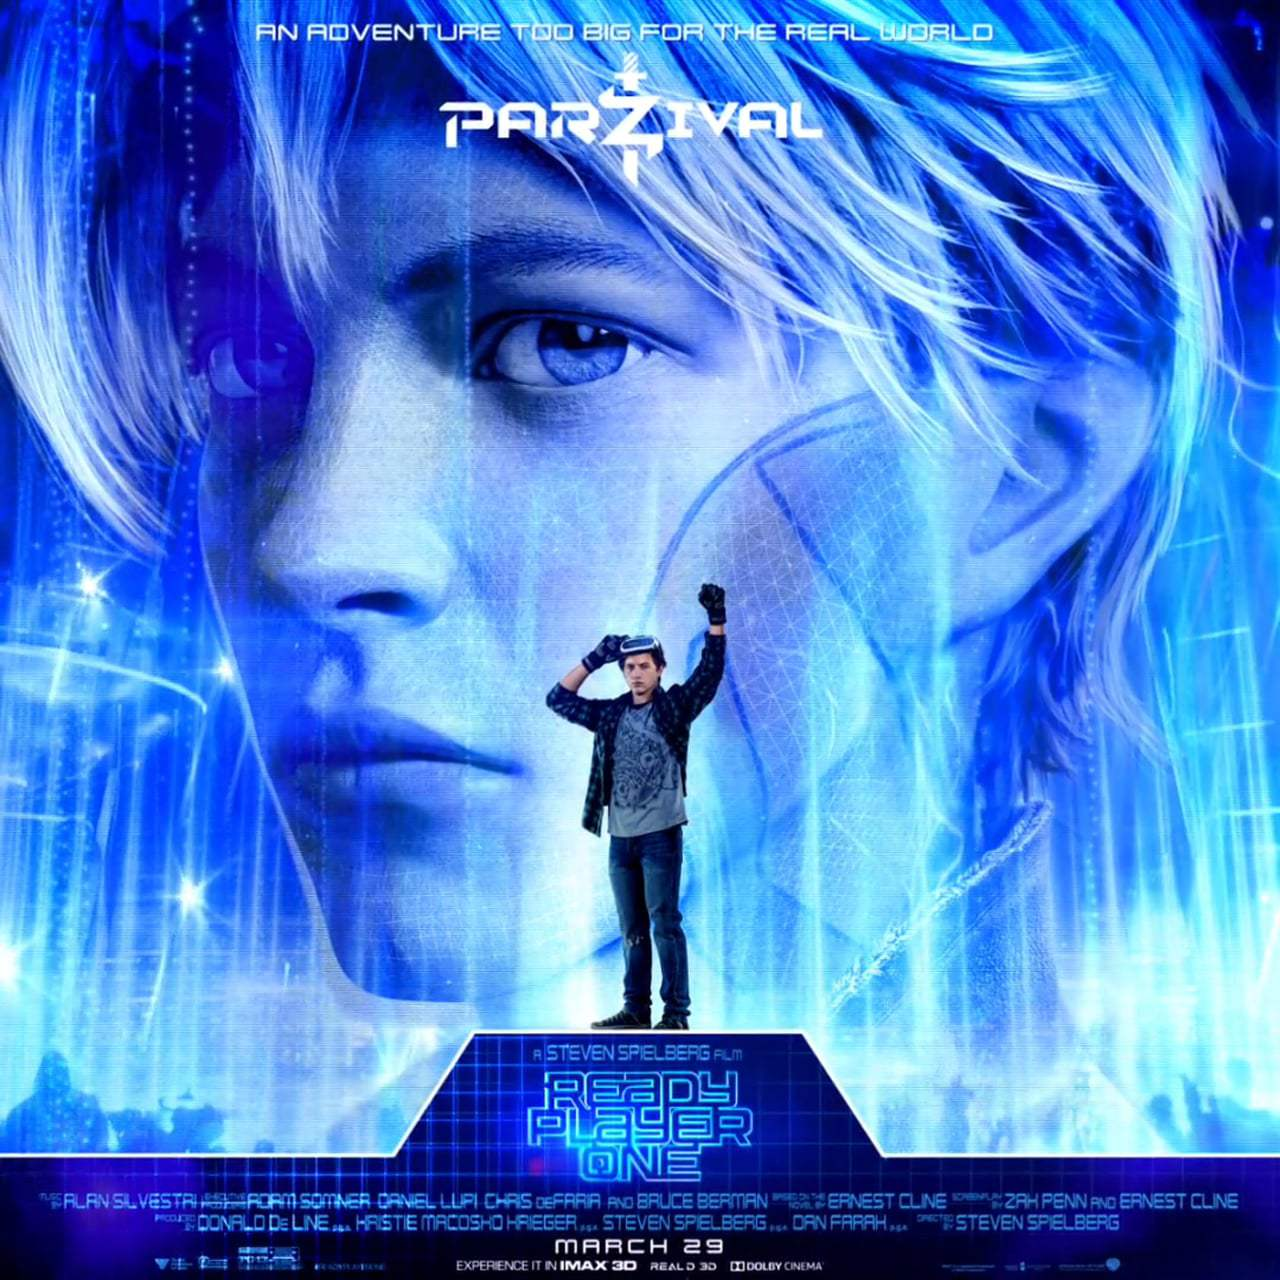 Ready Player One Character Motion Posters (2018)